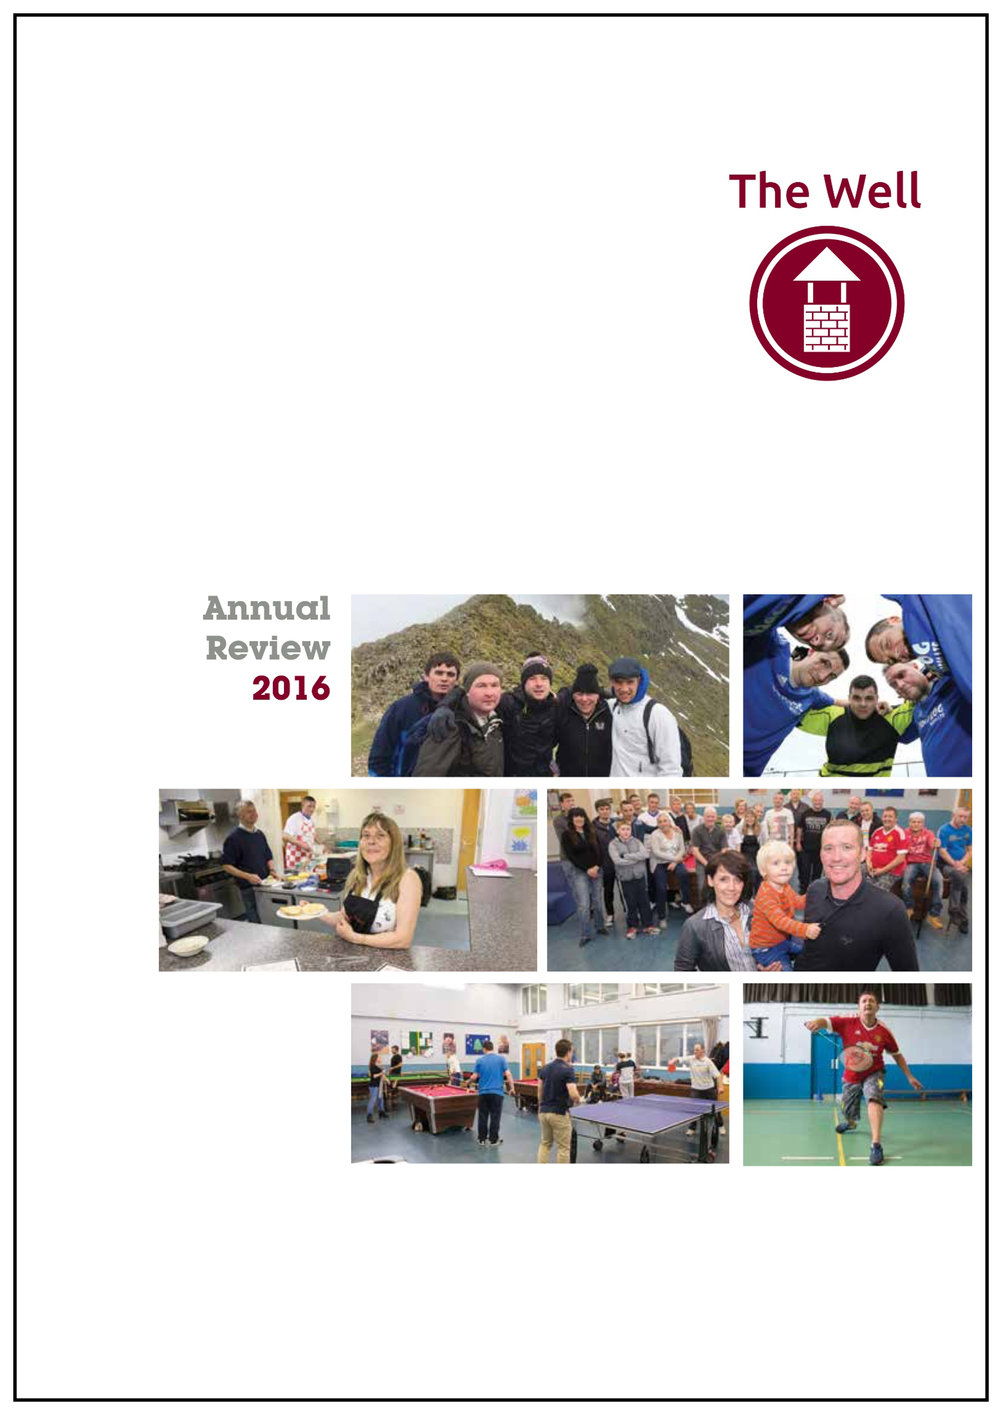 Well Annual Review front cover.PNG